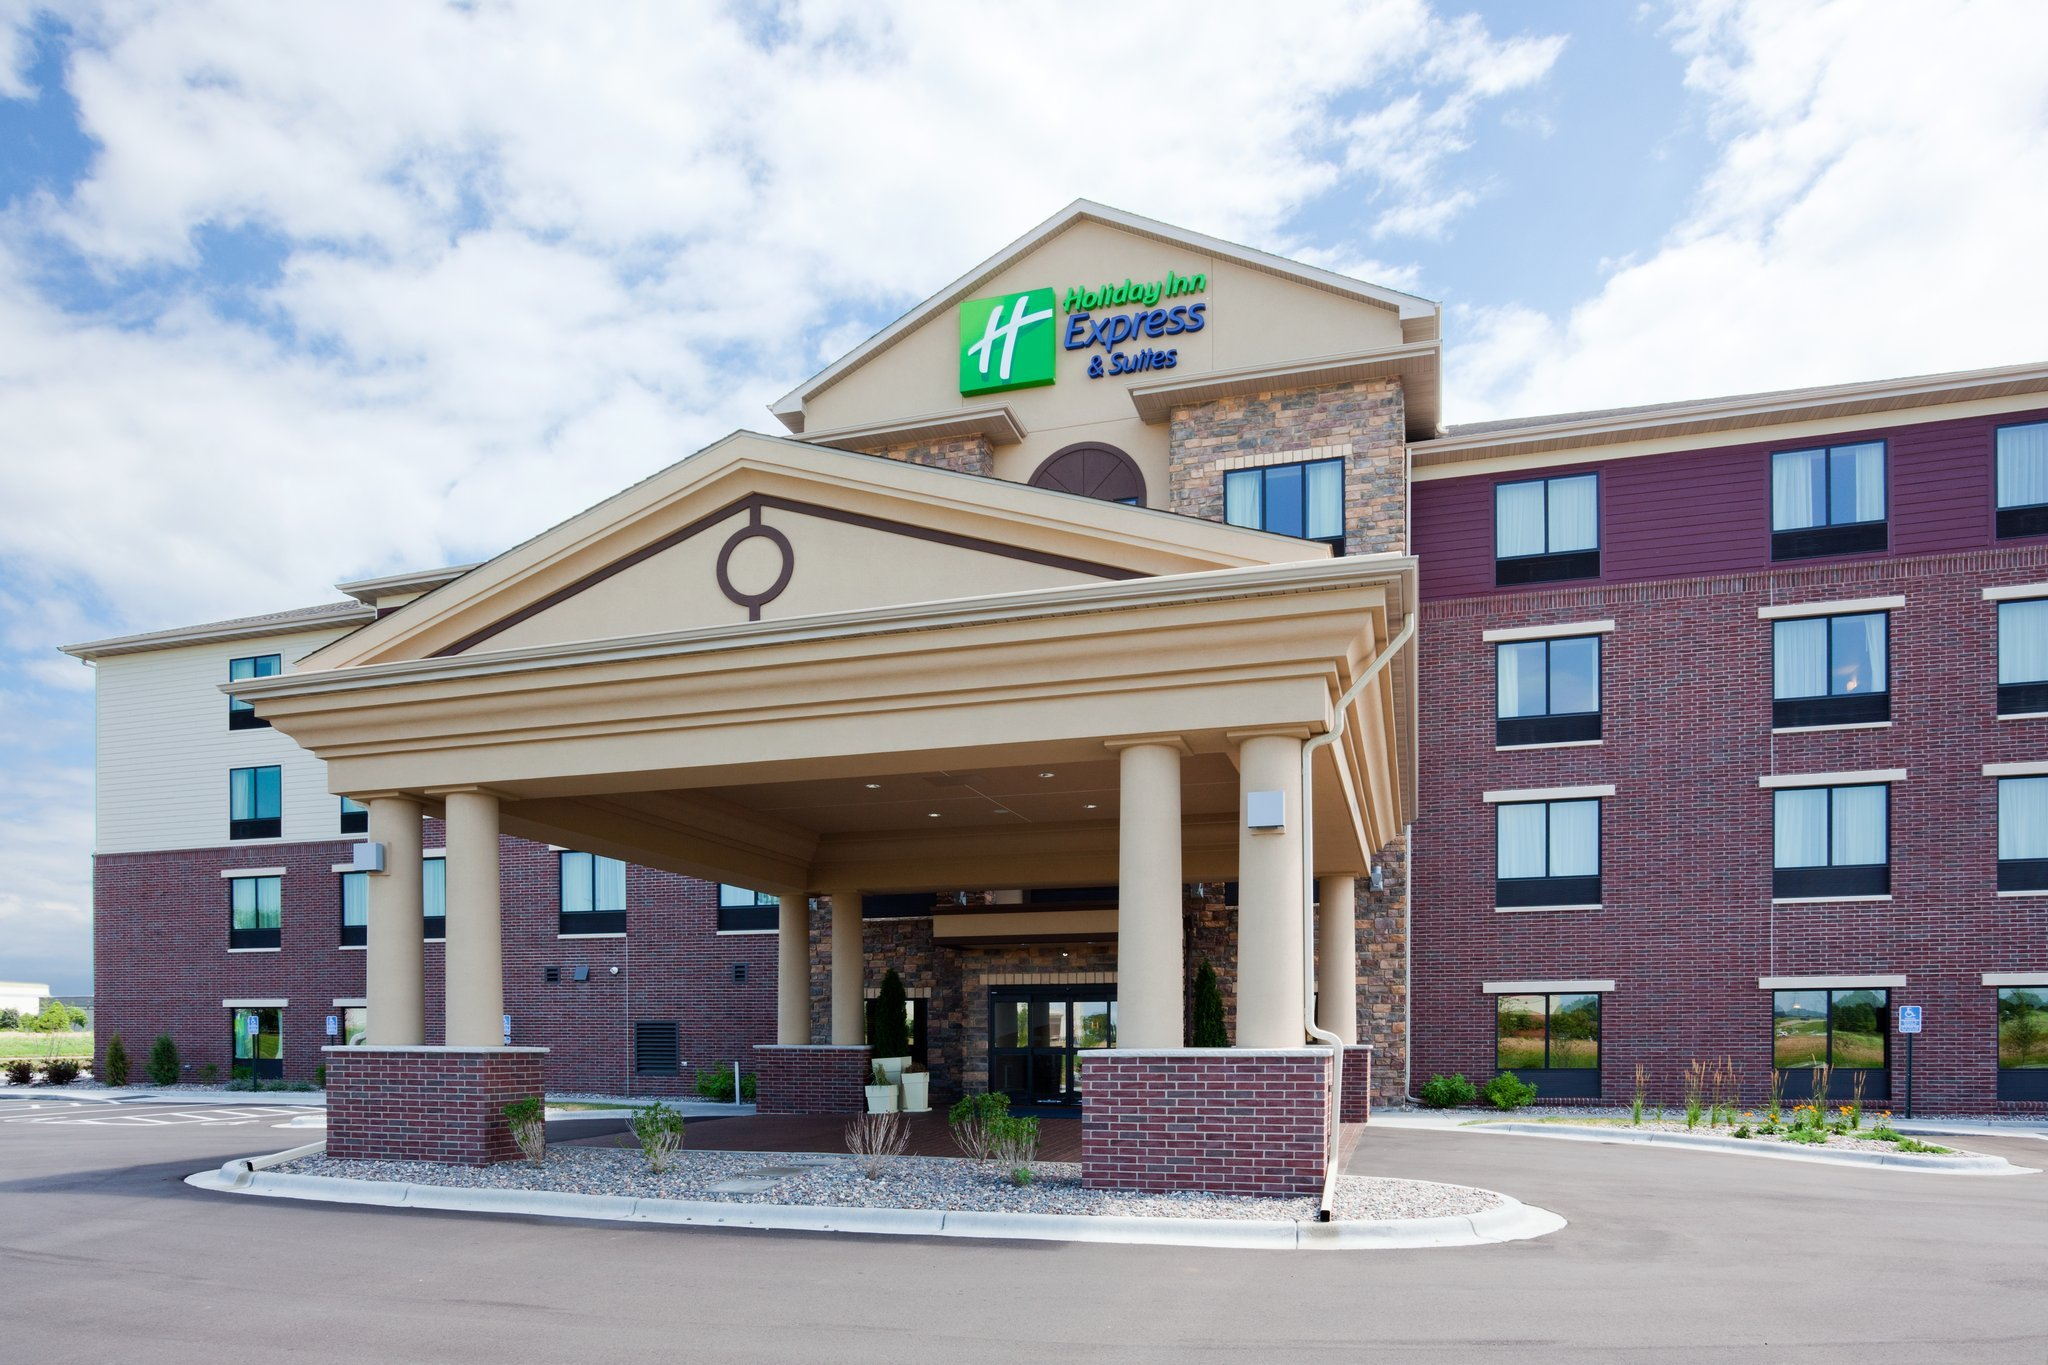 Holiday Inn Express Hotel & Suites Minneapolis SW - Shakopee